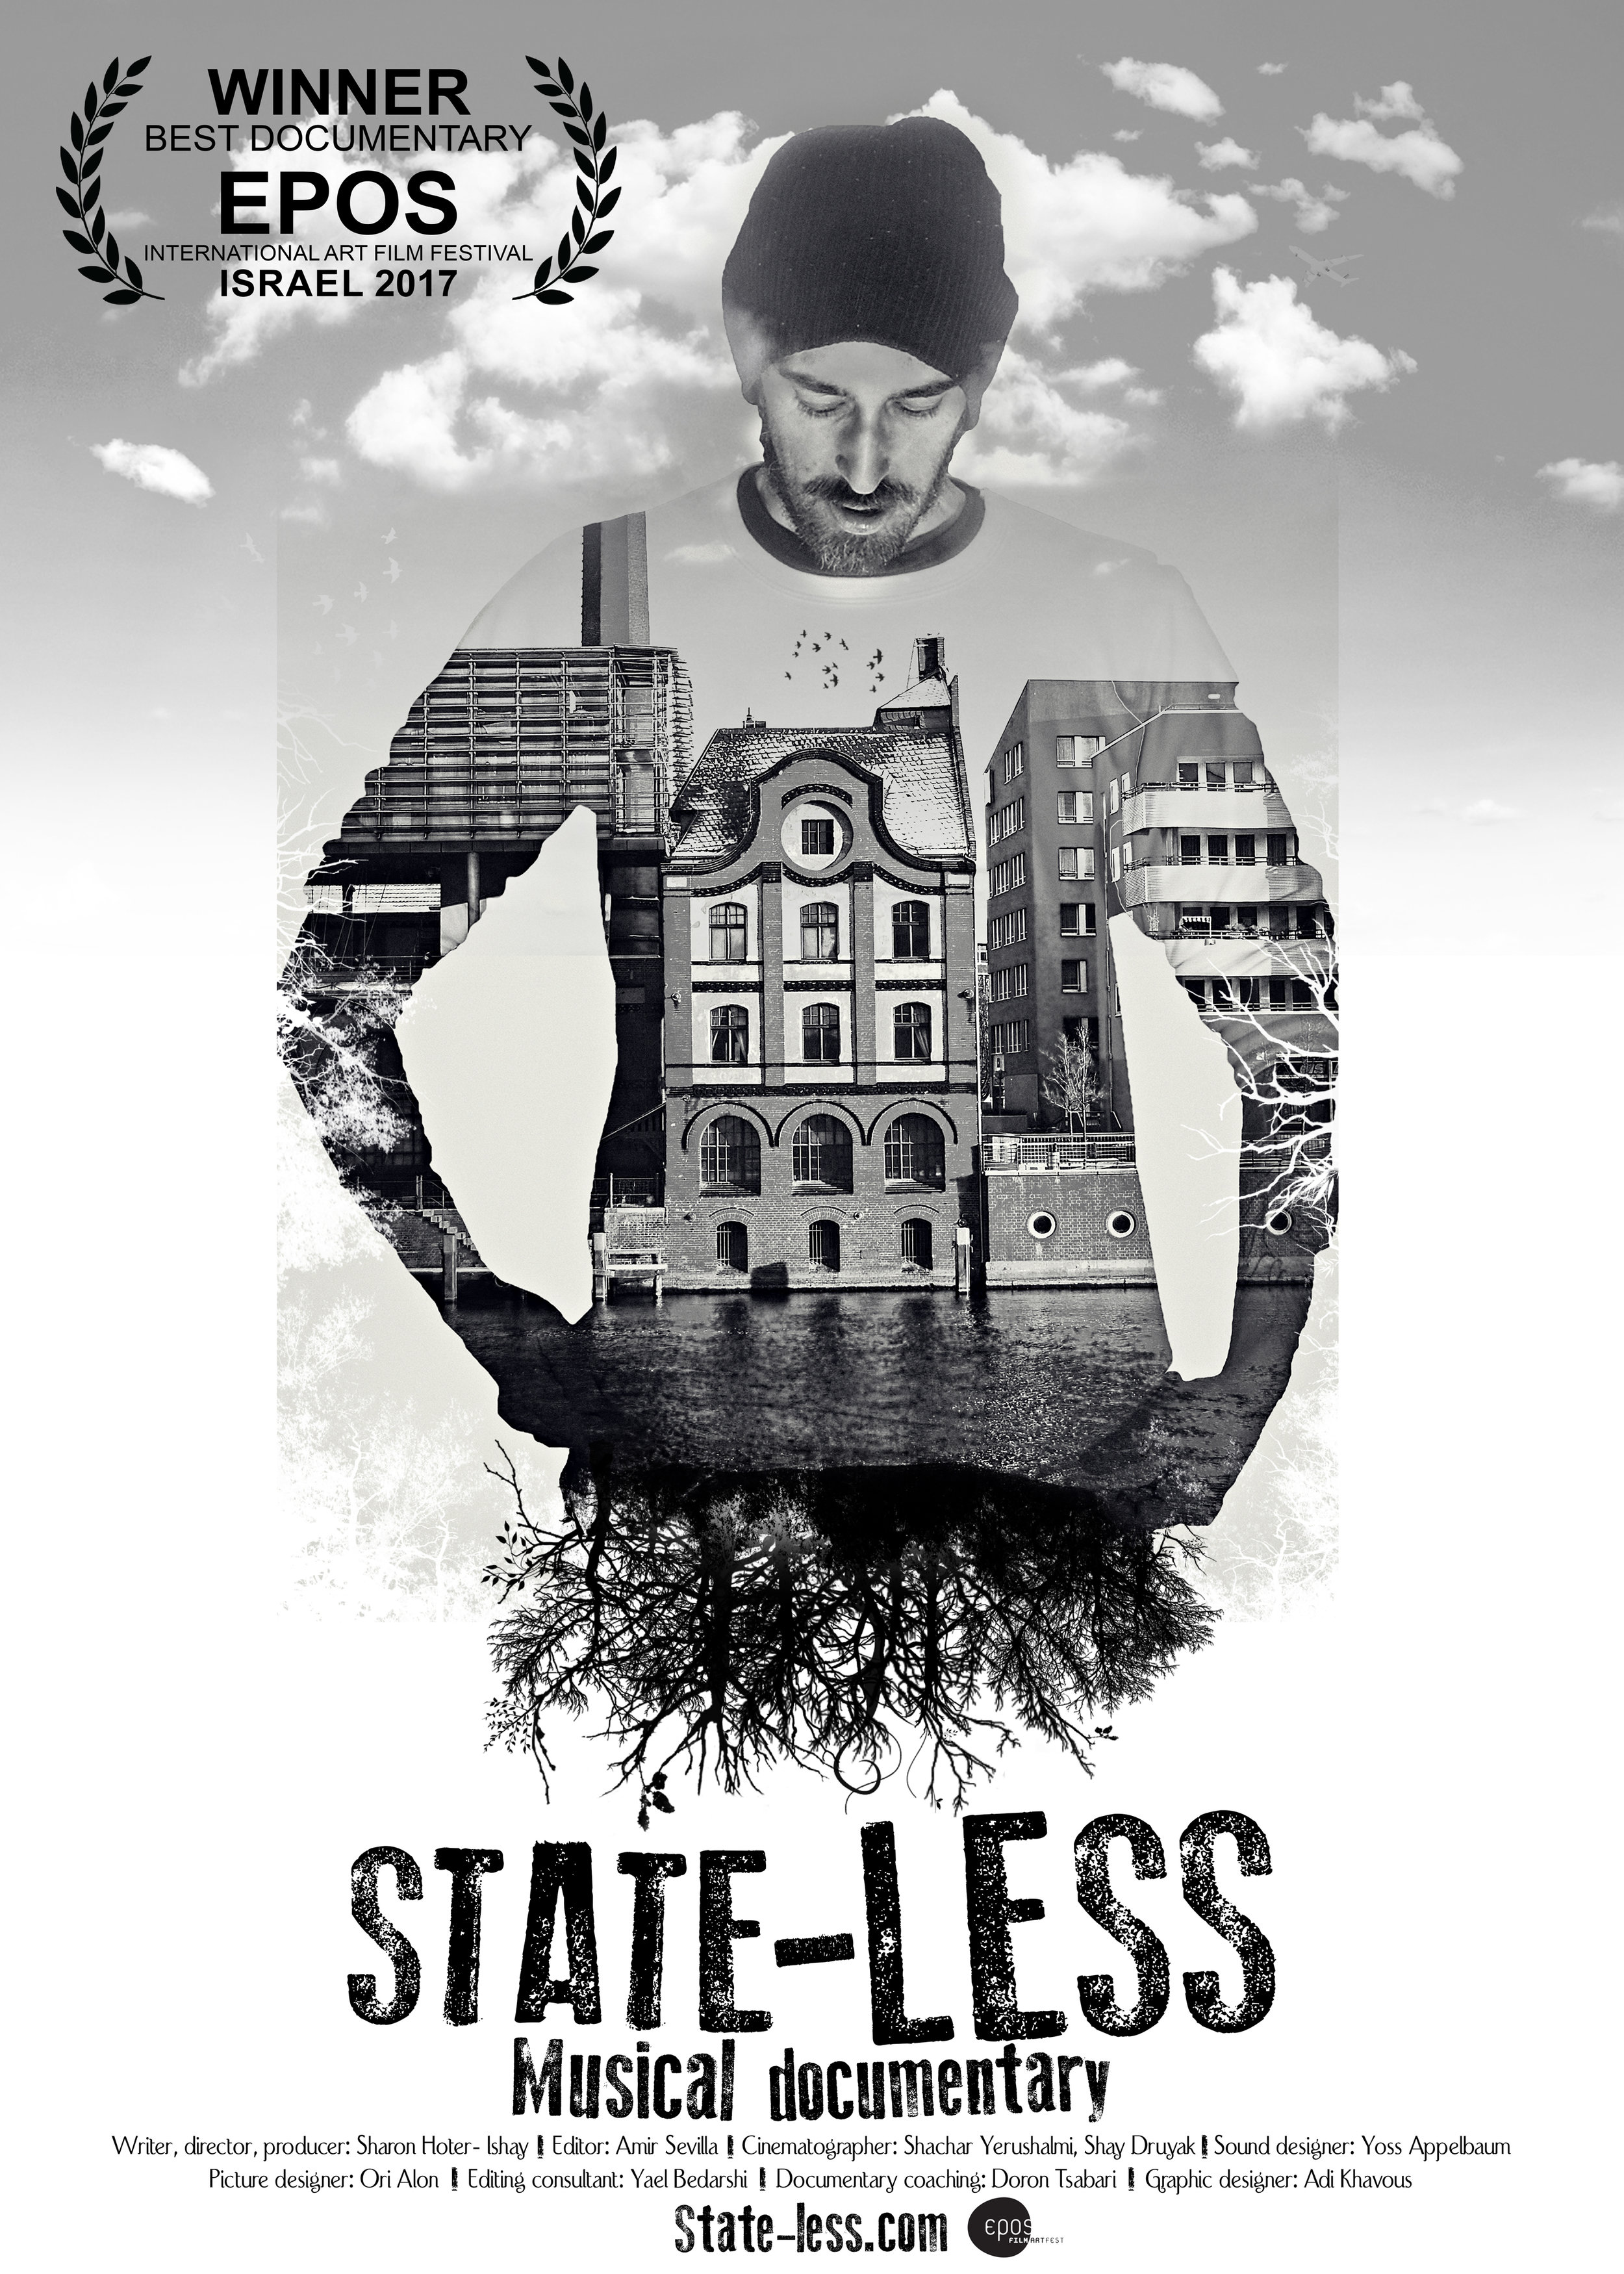 State-Less -Music Documentary.  The Story of Adi Khavous, a musician and extraordinary artist who chose a vagabond lifestyle. Adi left home in Israel and now lives in Canada as a solitary immigrant and rock 'n' roll singer. The film depicts five years of Adi's journey and presents an alternative, off-beat way of life. In his lonesome life, Adi holds on to one dream: to break through as a musician.